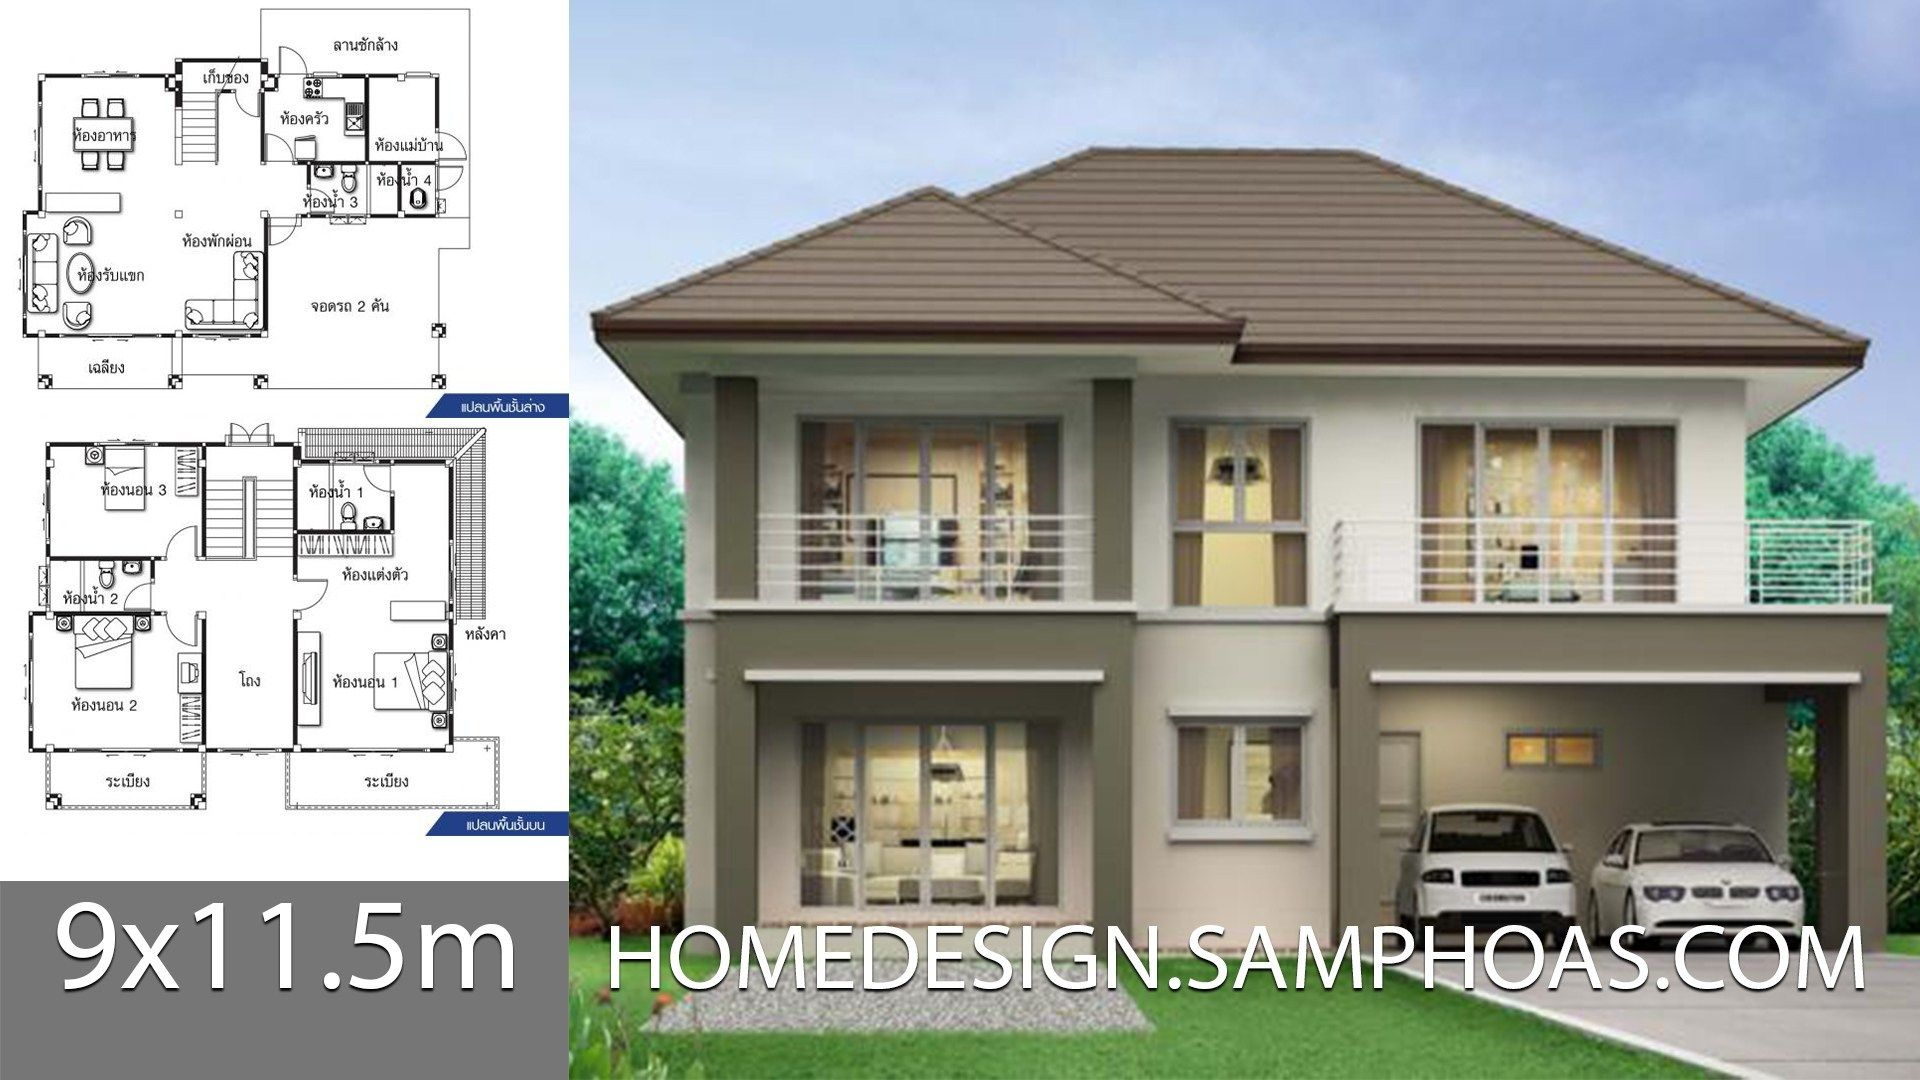 House Design Ideas 9 11 5m With 3 Bedrooms Bungalow Style House Plans House Design Small House Design